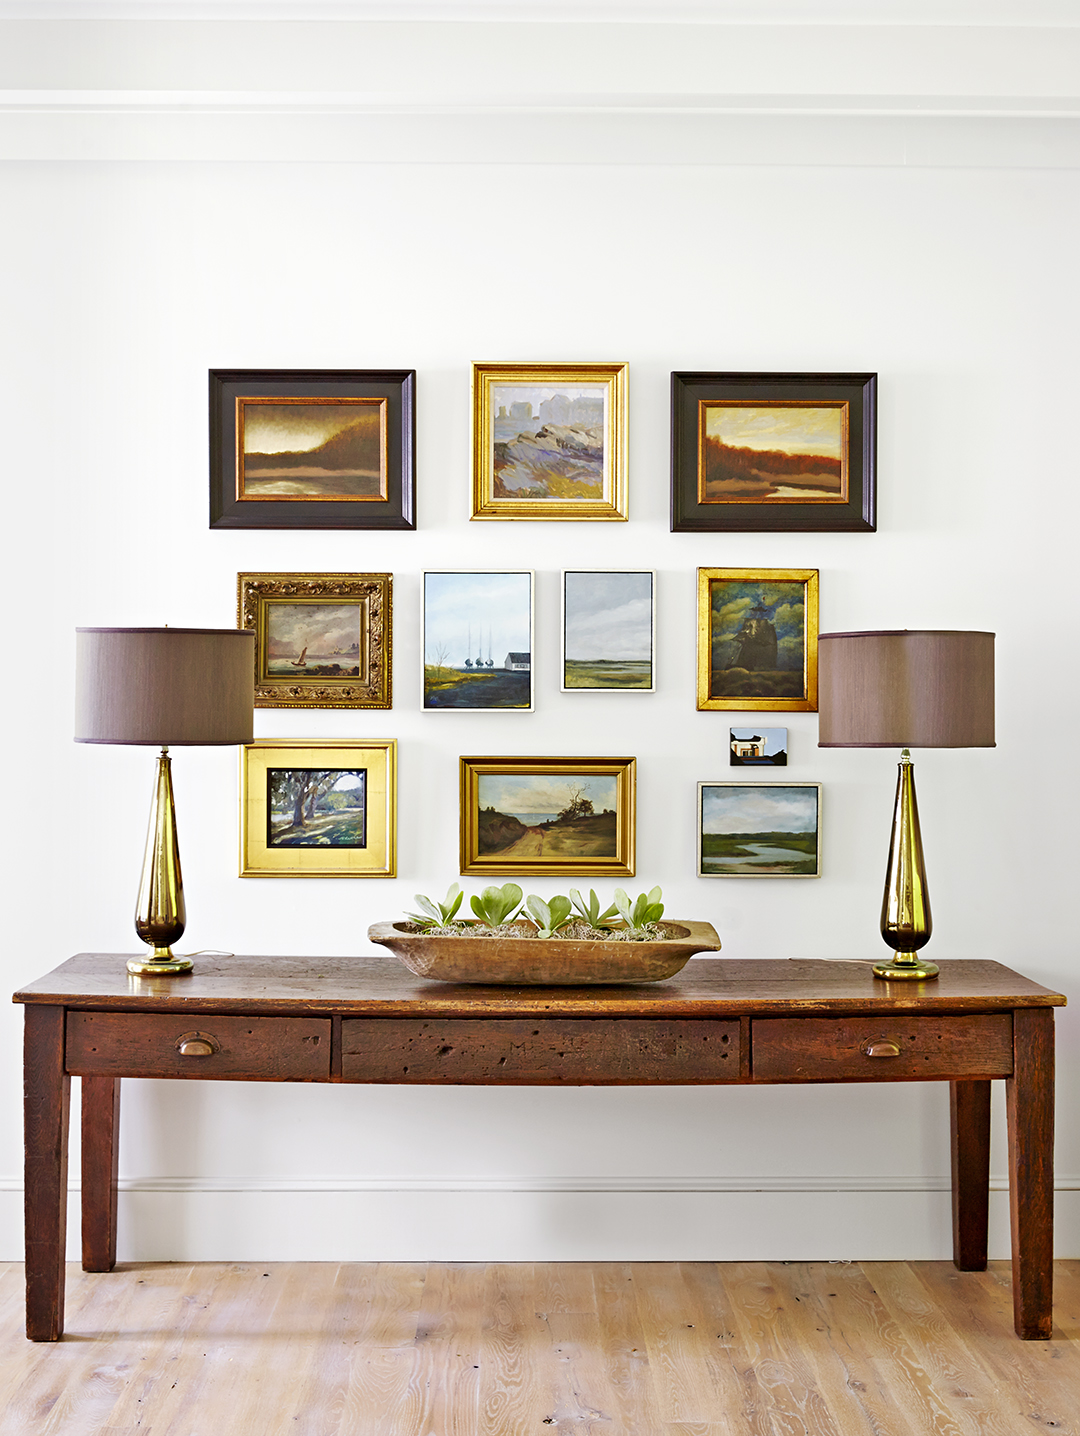 pictures arranged over rustic table